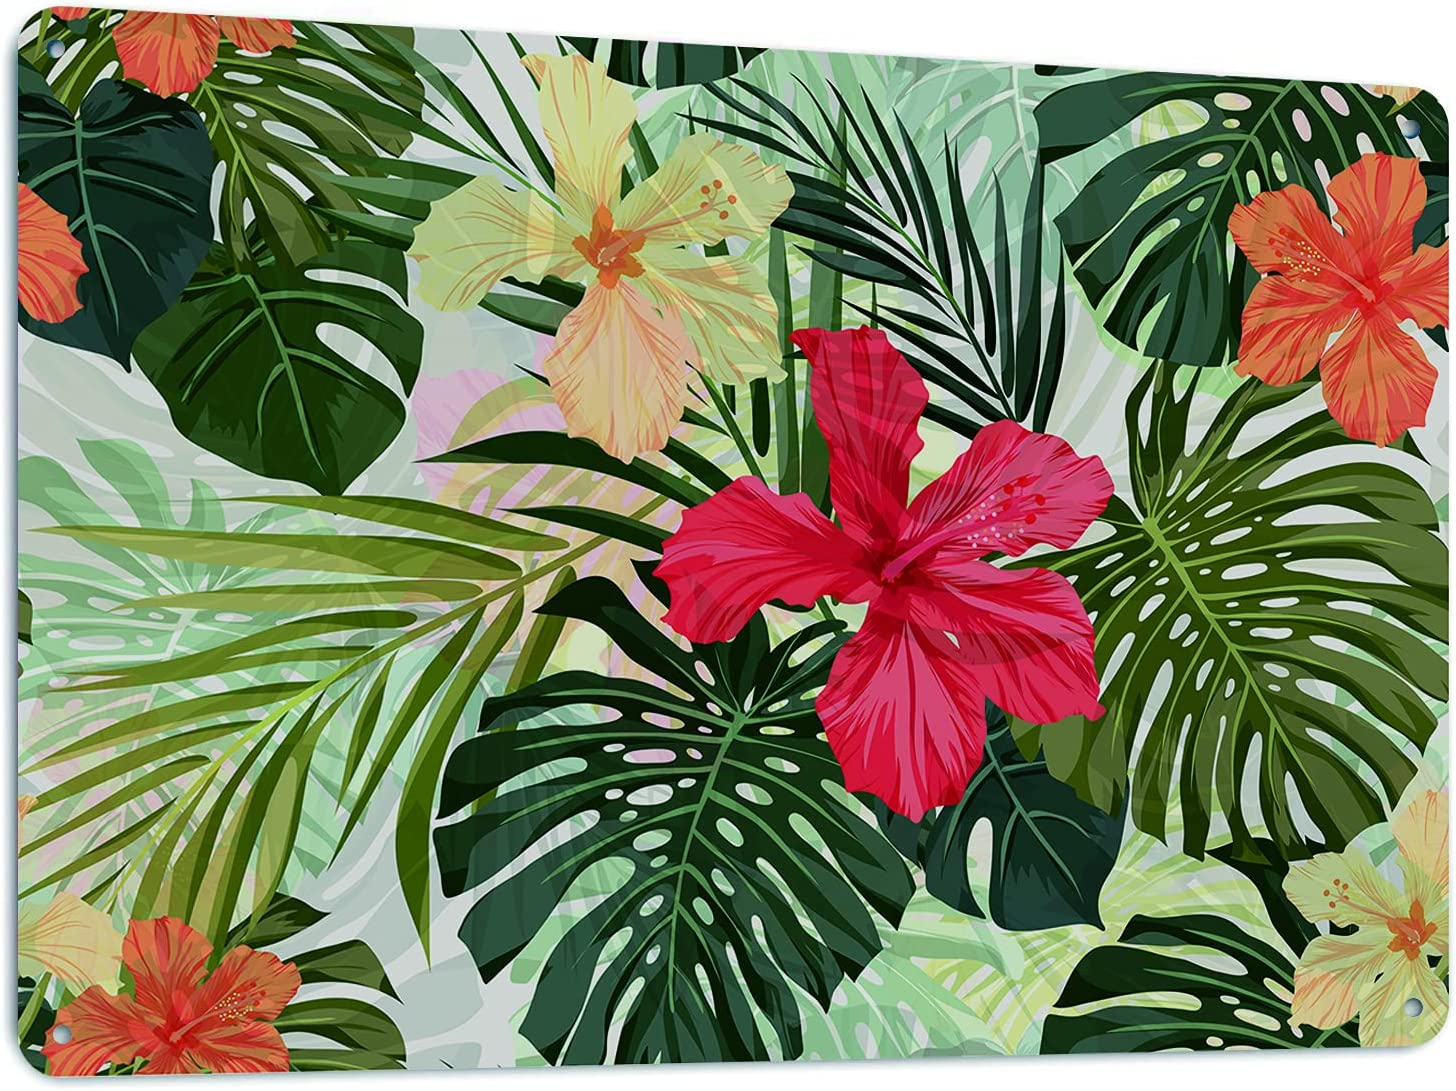 Beabes Hawaiian Tin Signs Retro Style Tropical Leaves Floral Summer Plants Hibiscus Home Wall Decor Wall Art Metal Plaquesfor Home, Bar, Diner, or Pub